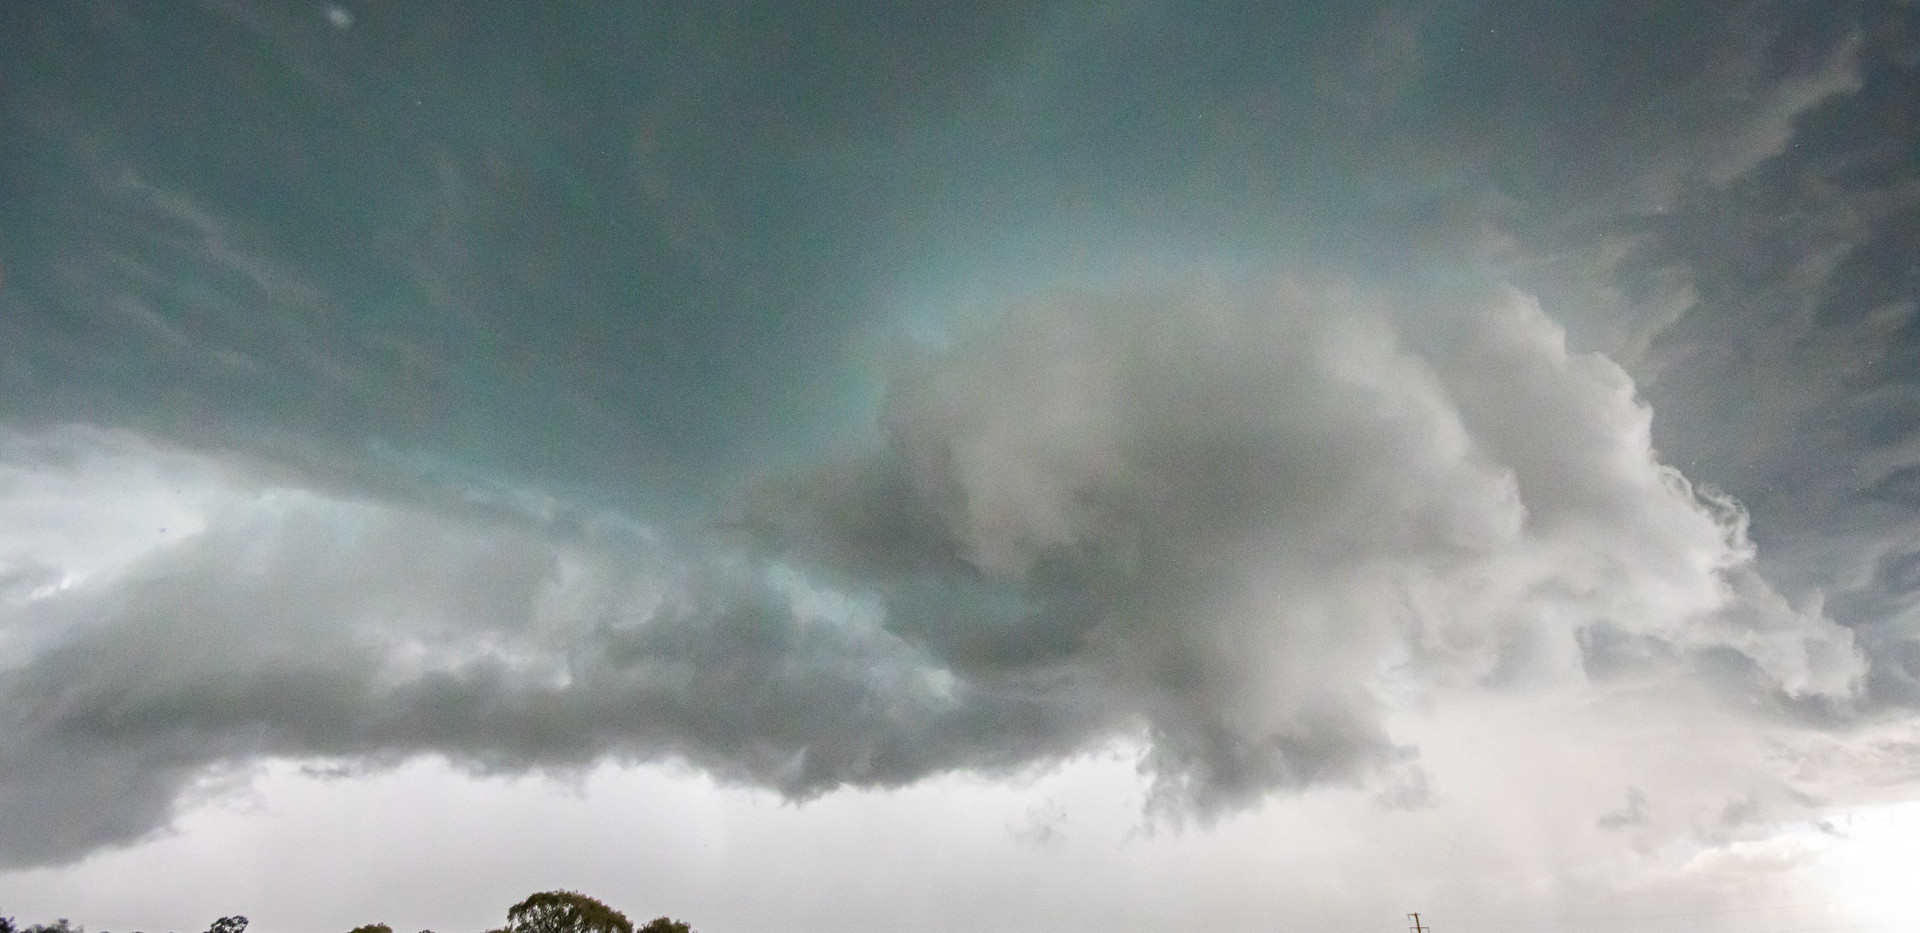 Wall cloud with rotation